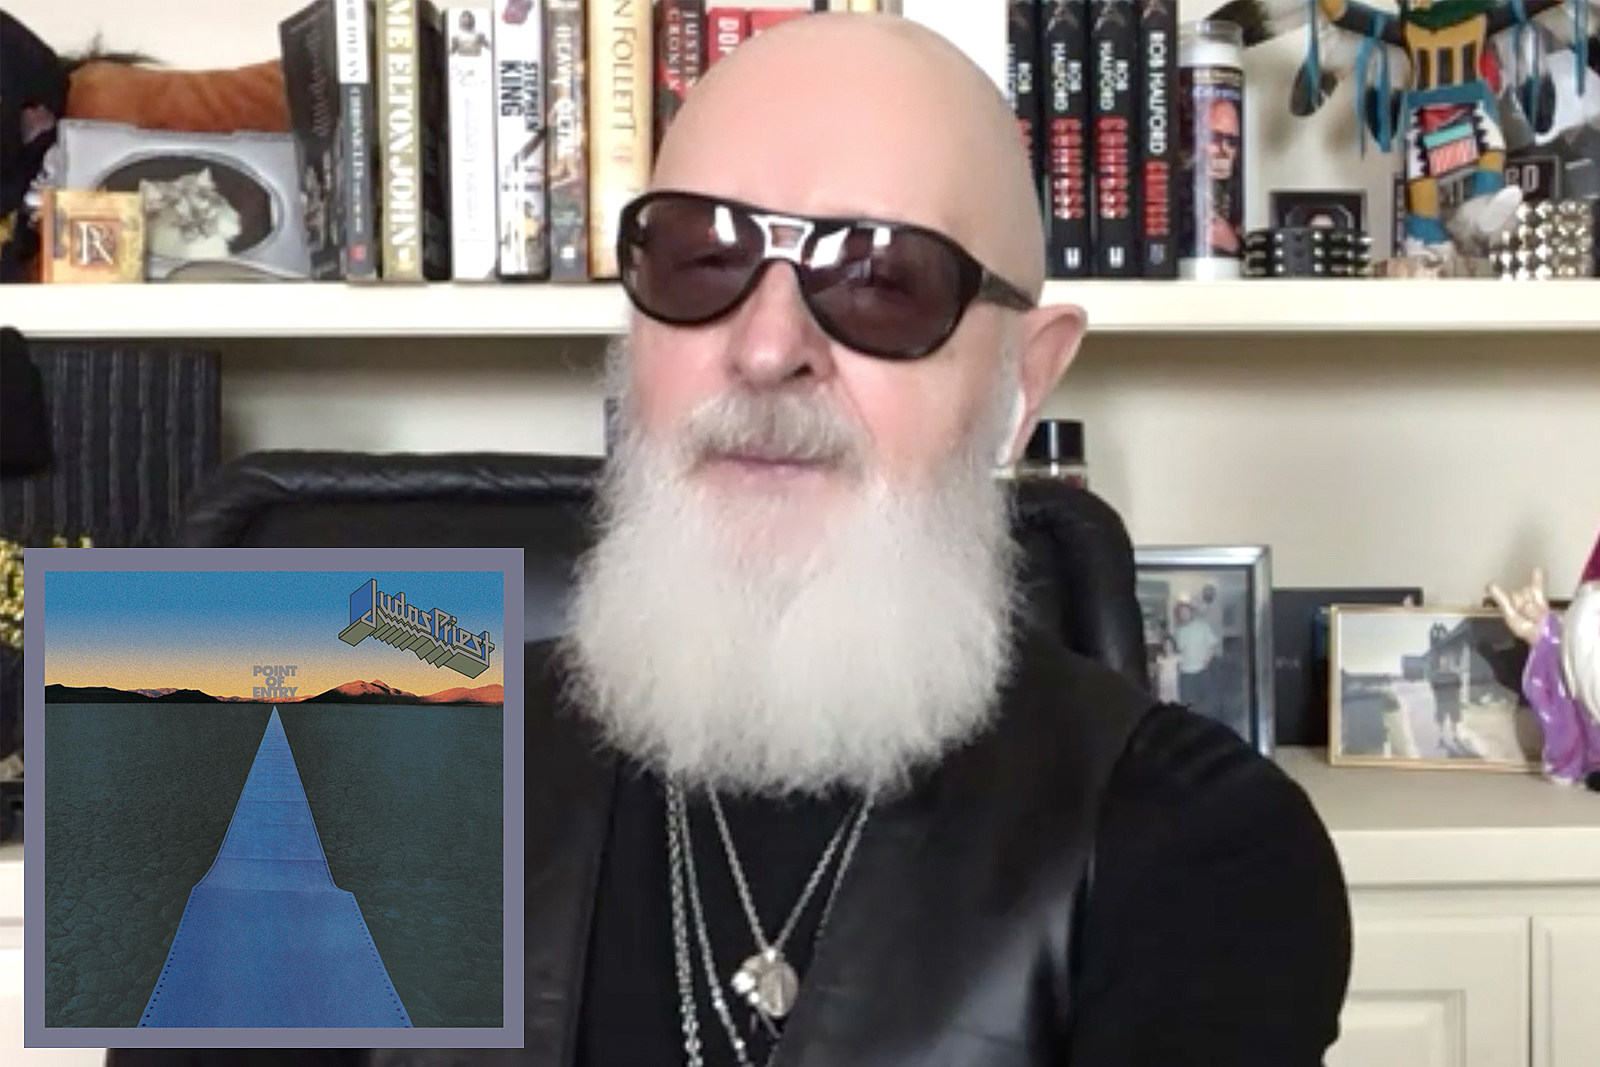 How Lack of Time Helped Judas Priest Find Their 'Point of Entry'